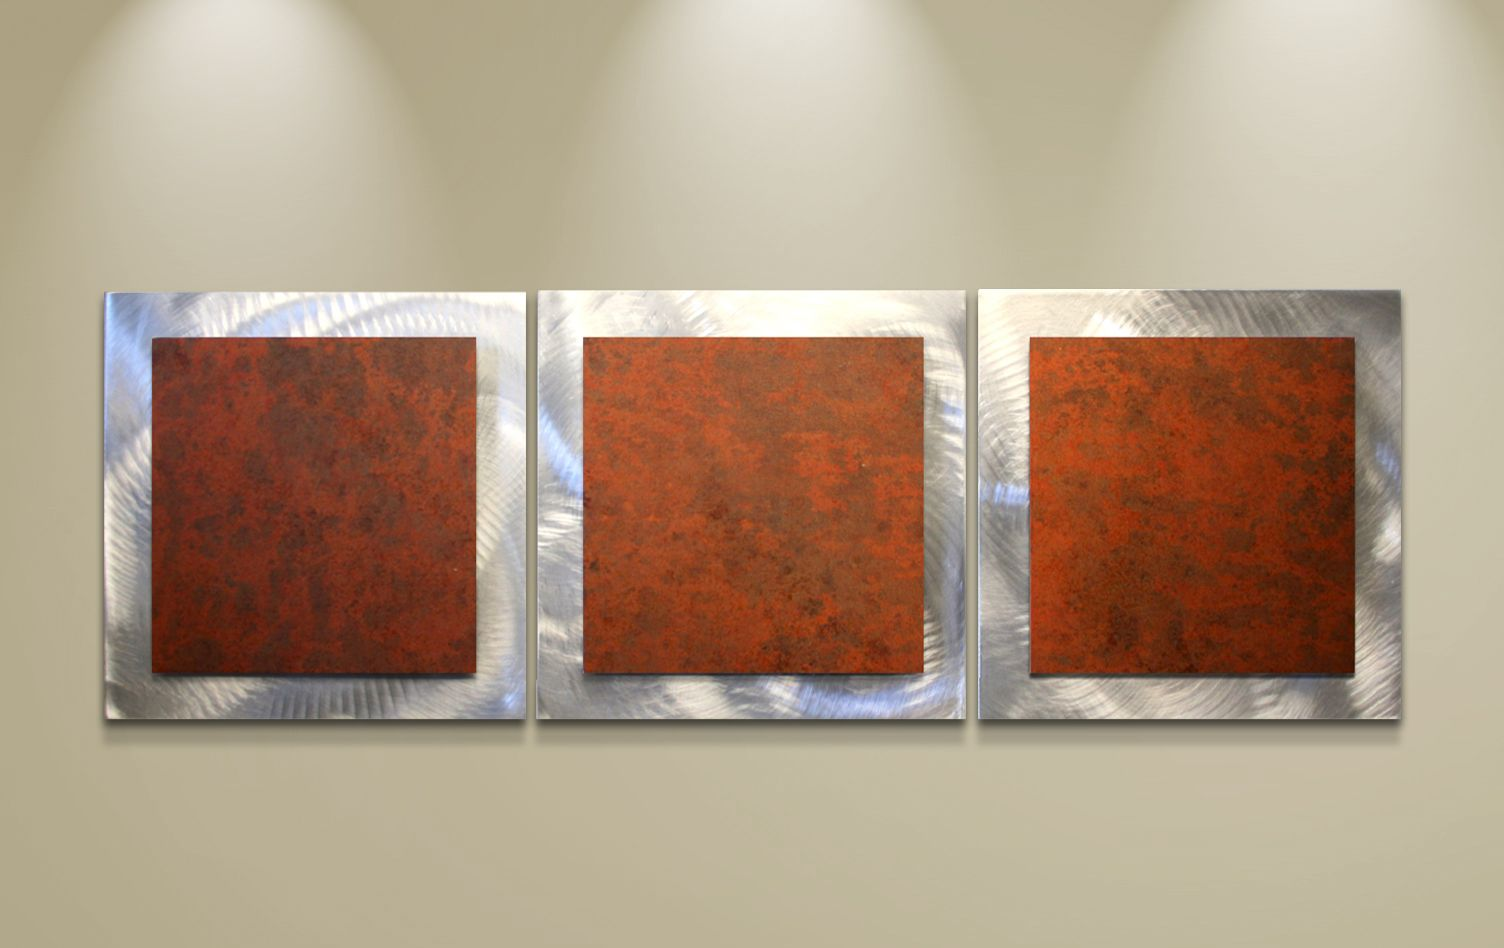 Metal workings for sale multi panel unique wall art rusty essence 38x12 in contemporary sculpture orange rust wall painting artsyhome